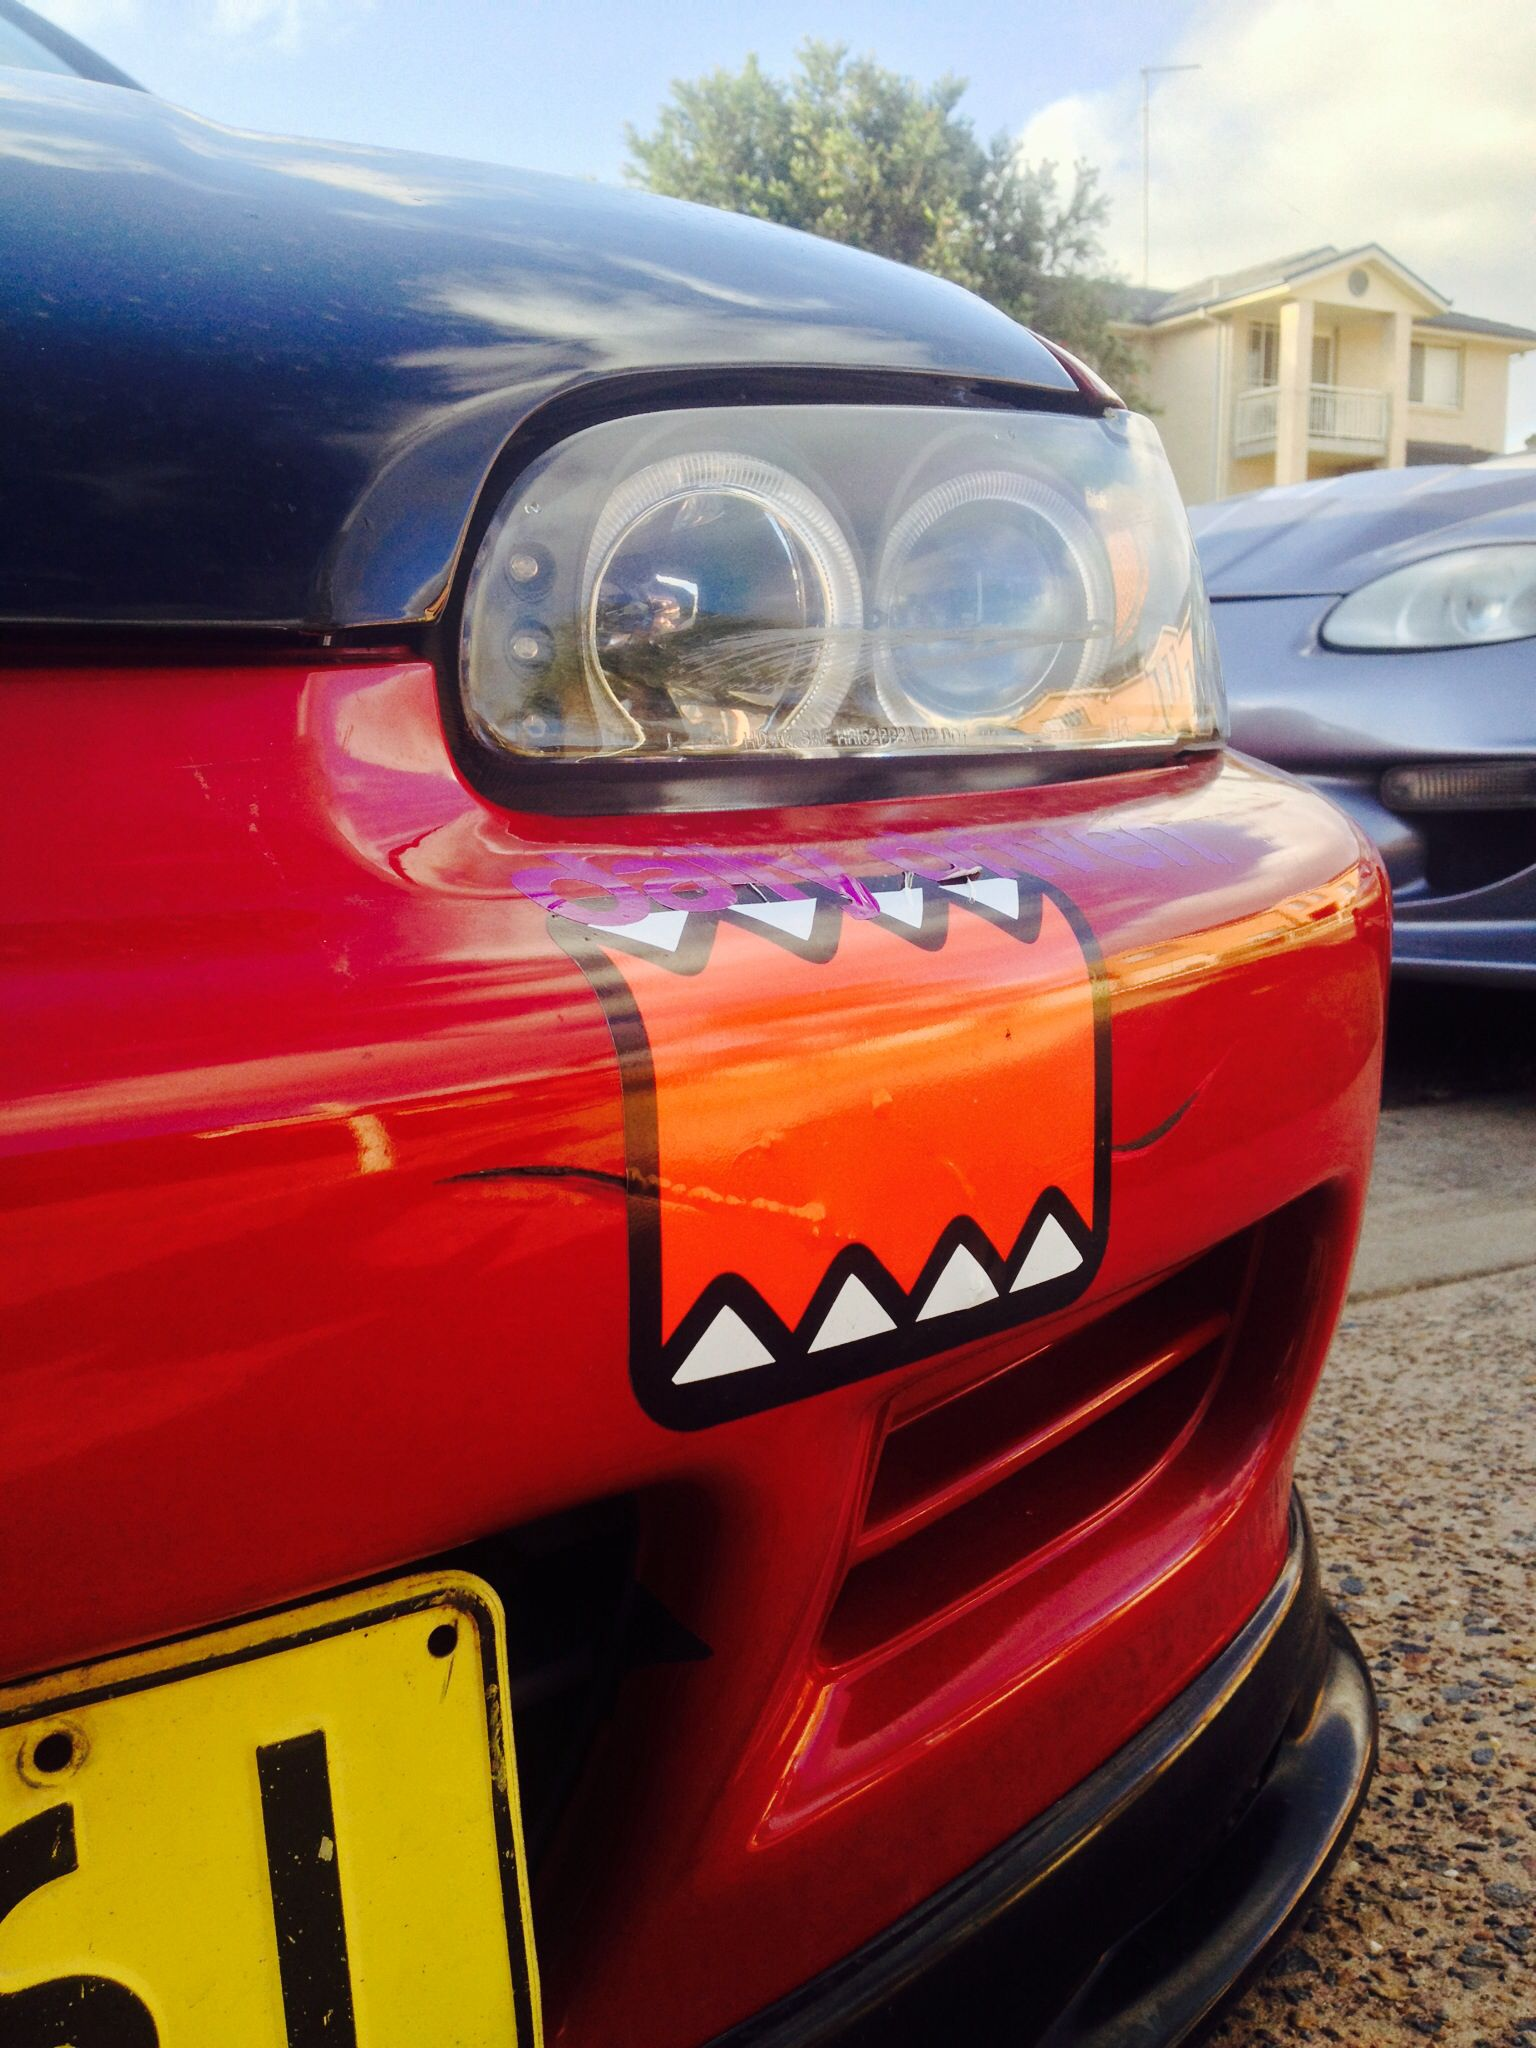 Car decals tribal graphic design zion series - So He Puts A Domo Sticker Over The Hole